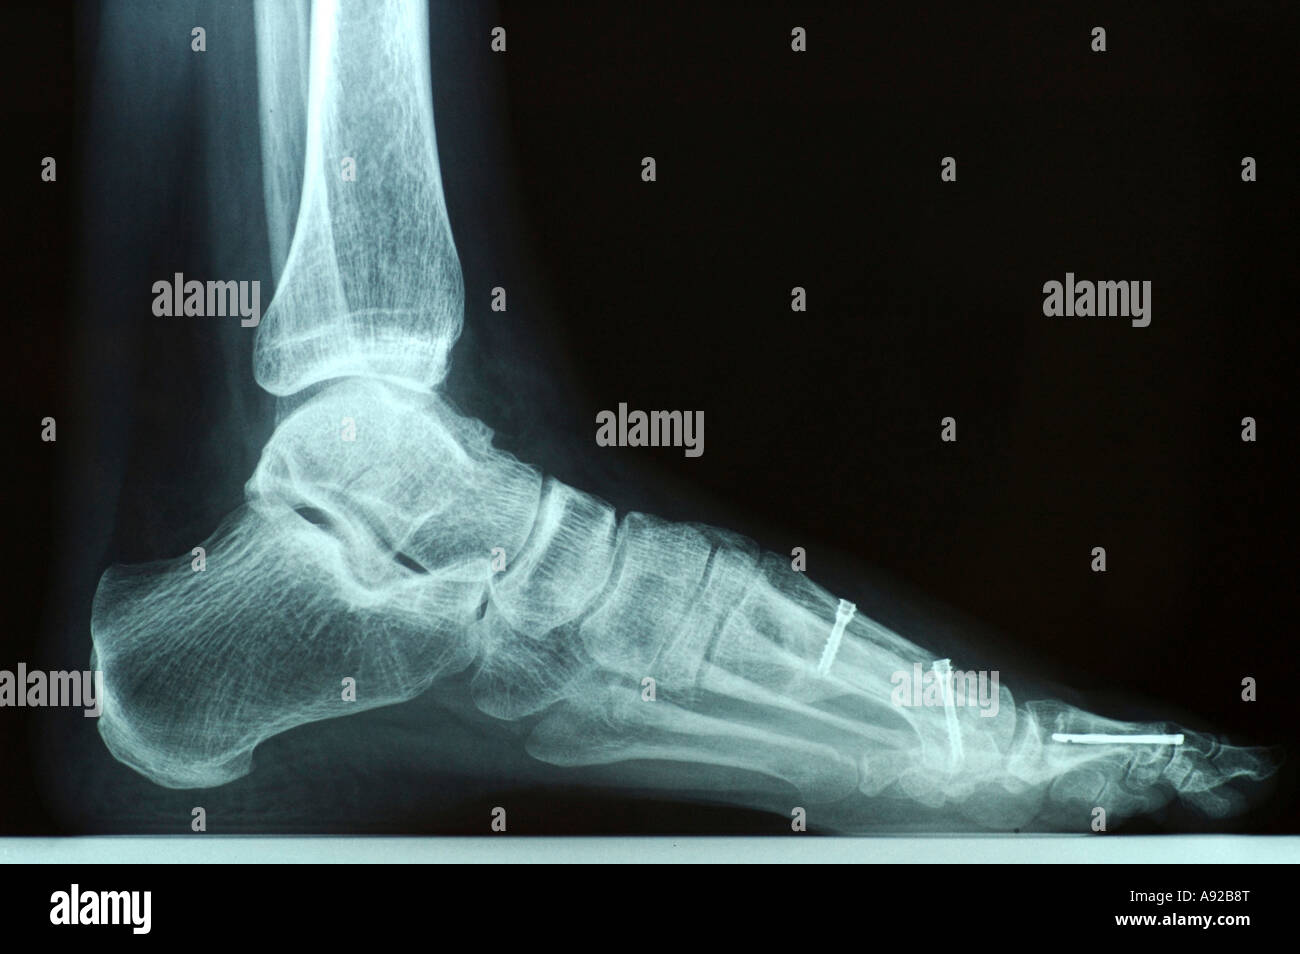 X-ray photo of a left foot after bunion surgery with screws and other hardware - Stock Image